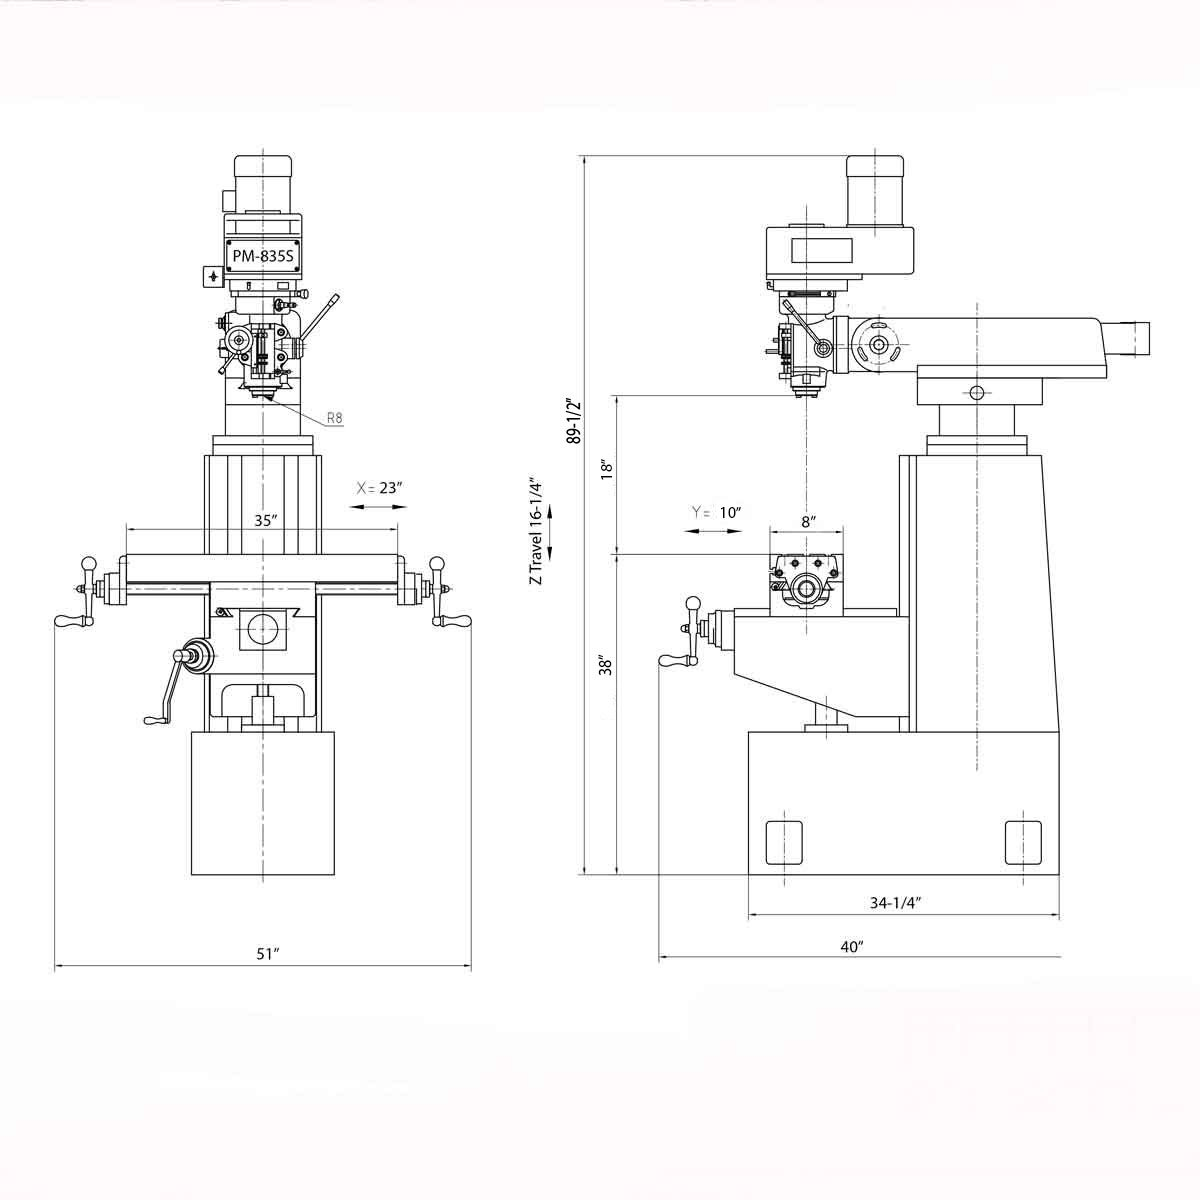 Single Phase Motor Starter Connection Diagram Control Wiring 1 Bridgeport Milling Machine Deh P5200hd Contactor